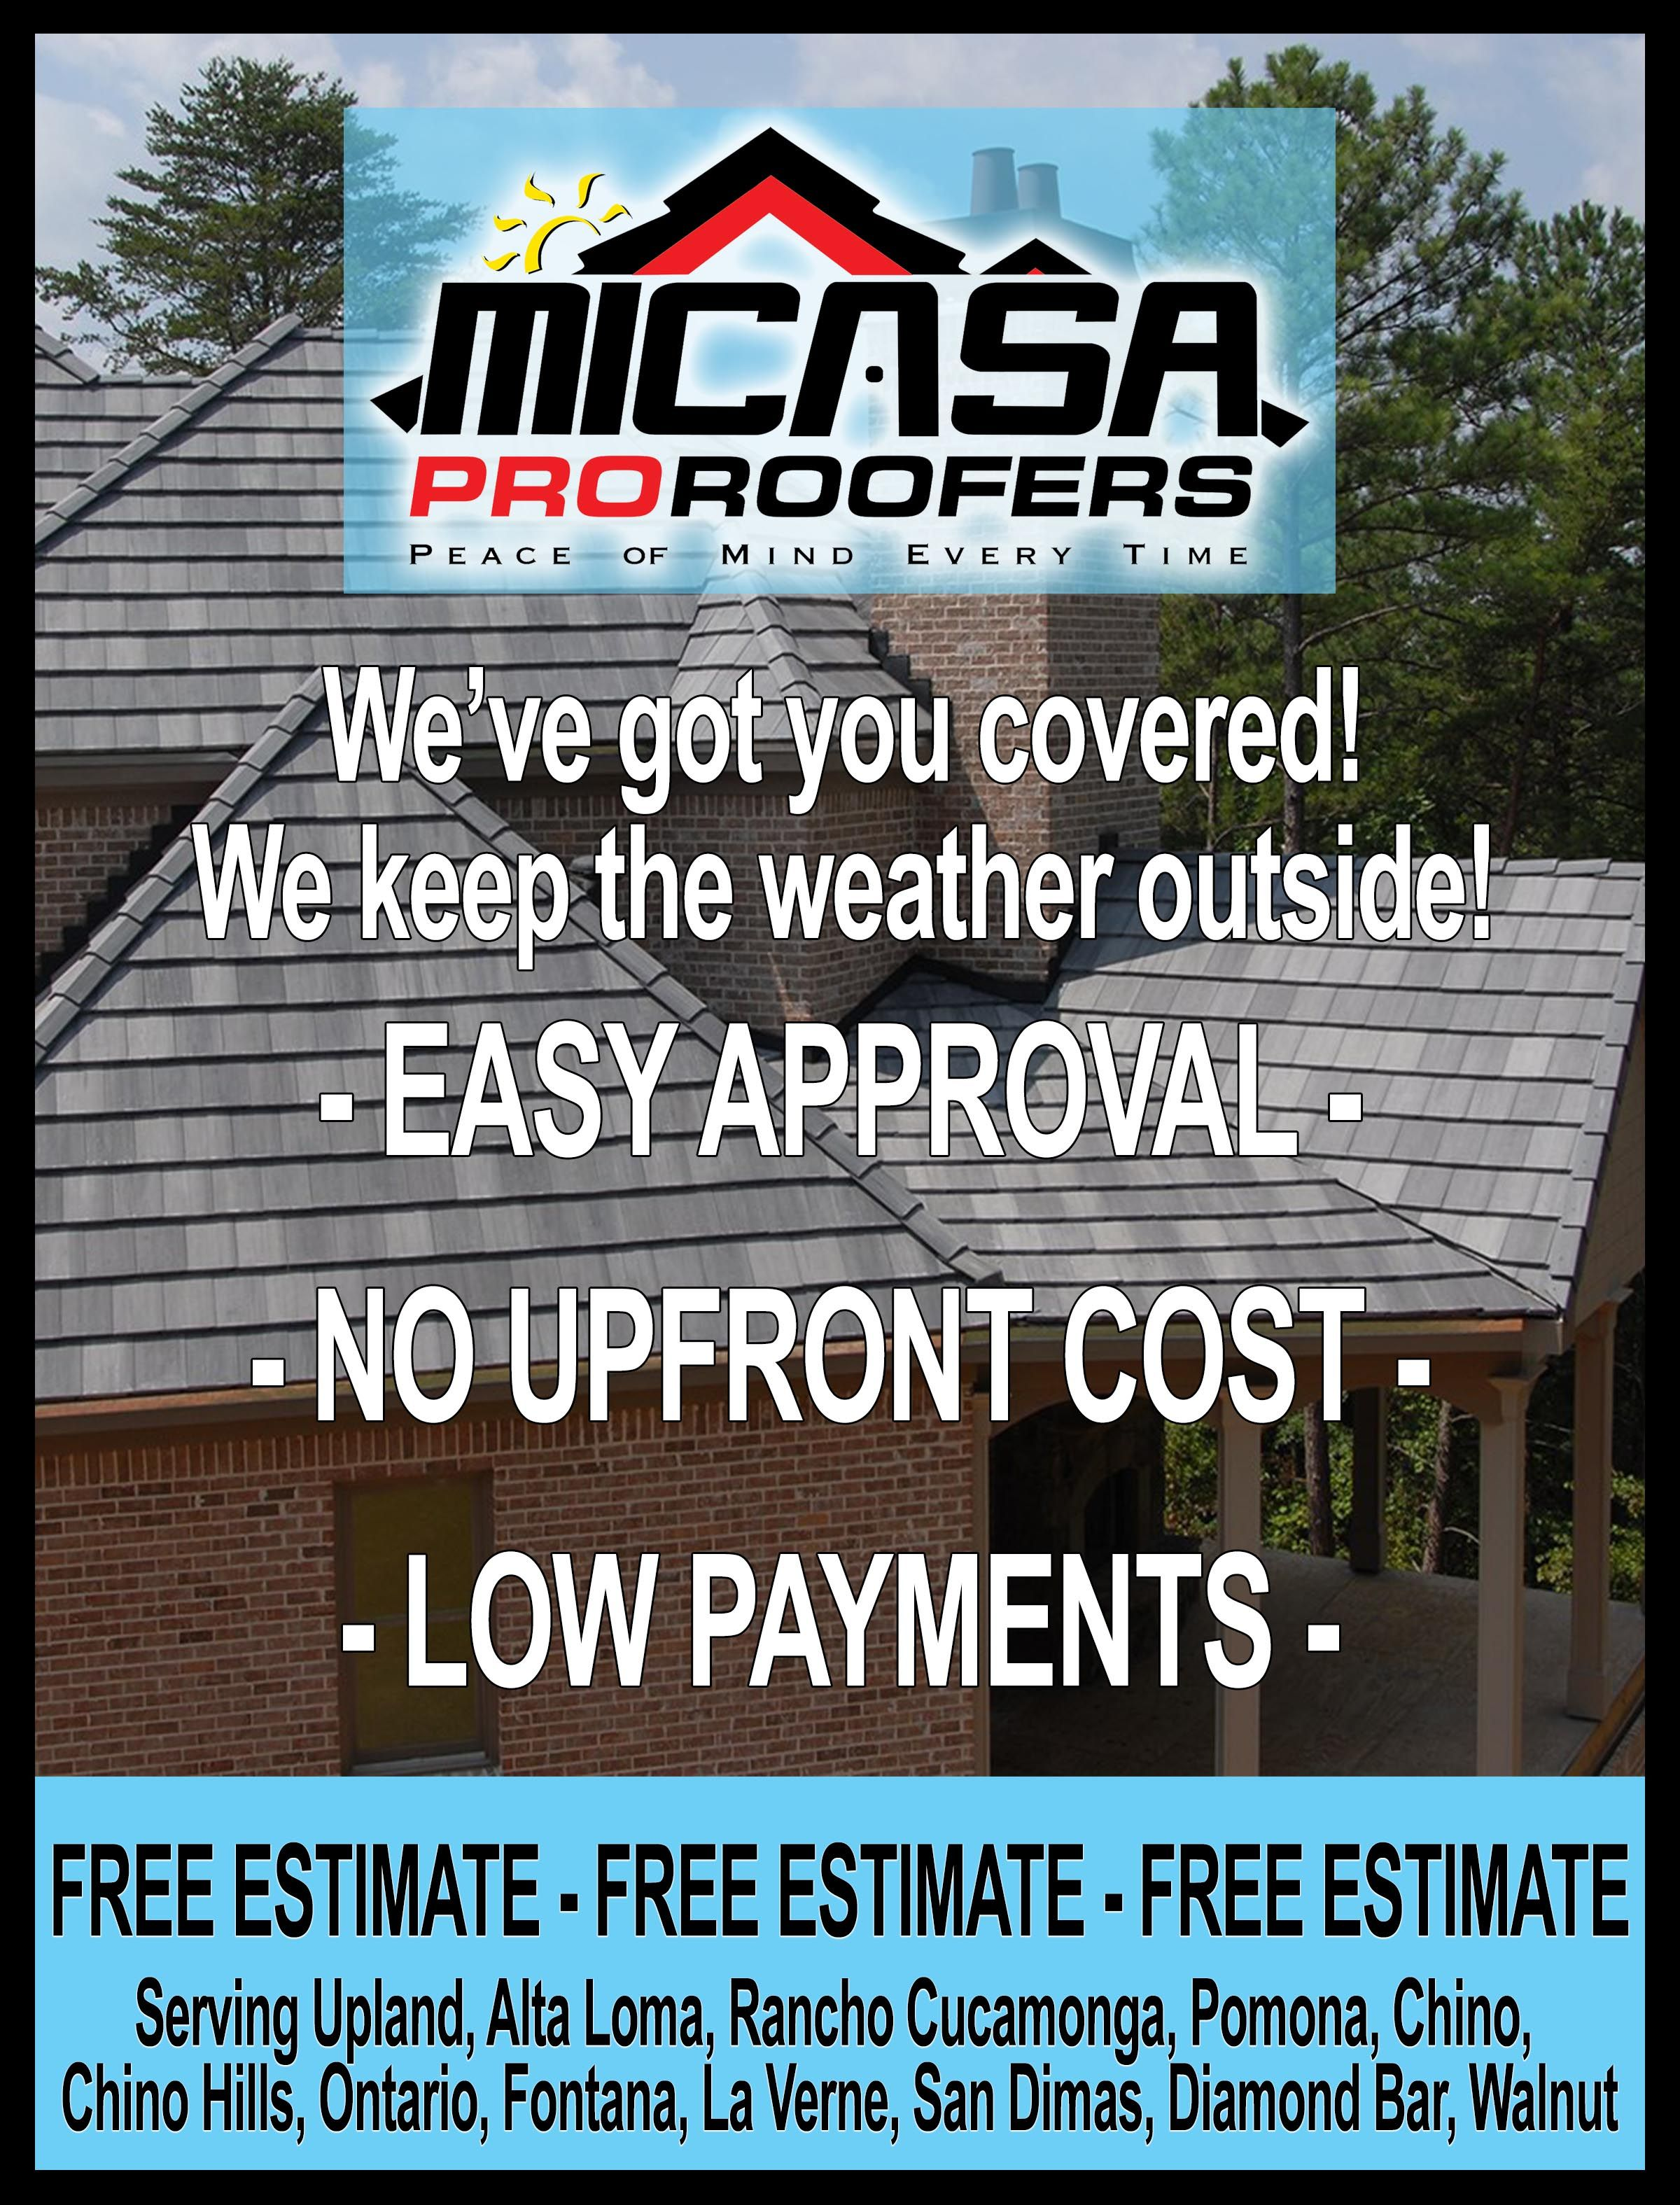 Image by Micasa Roofing on Micasa Pro Roofers Upland Ads